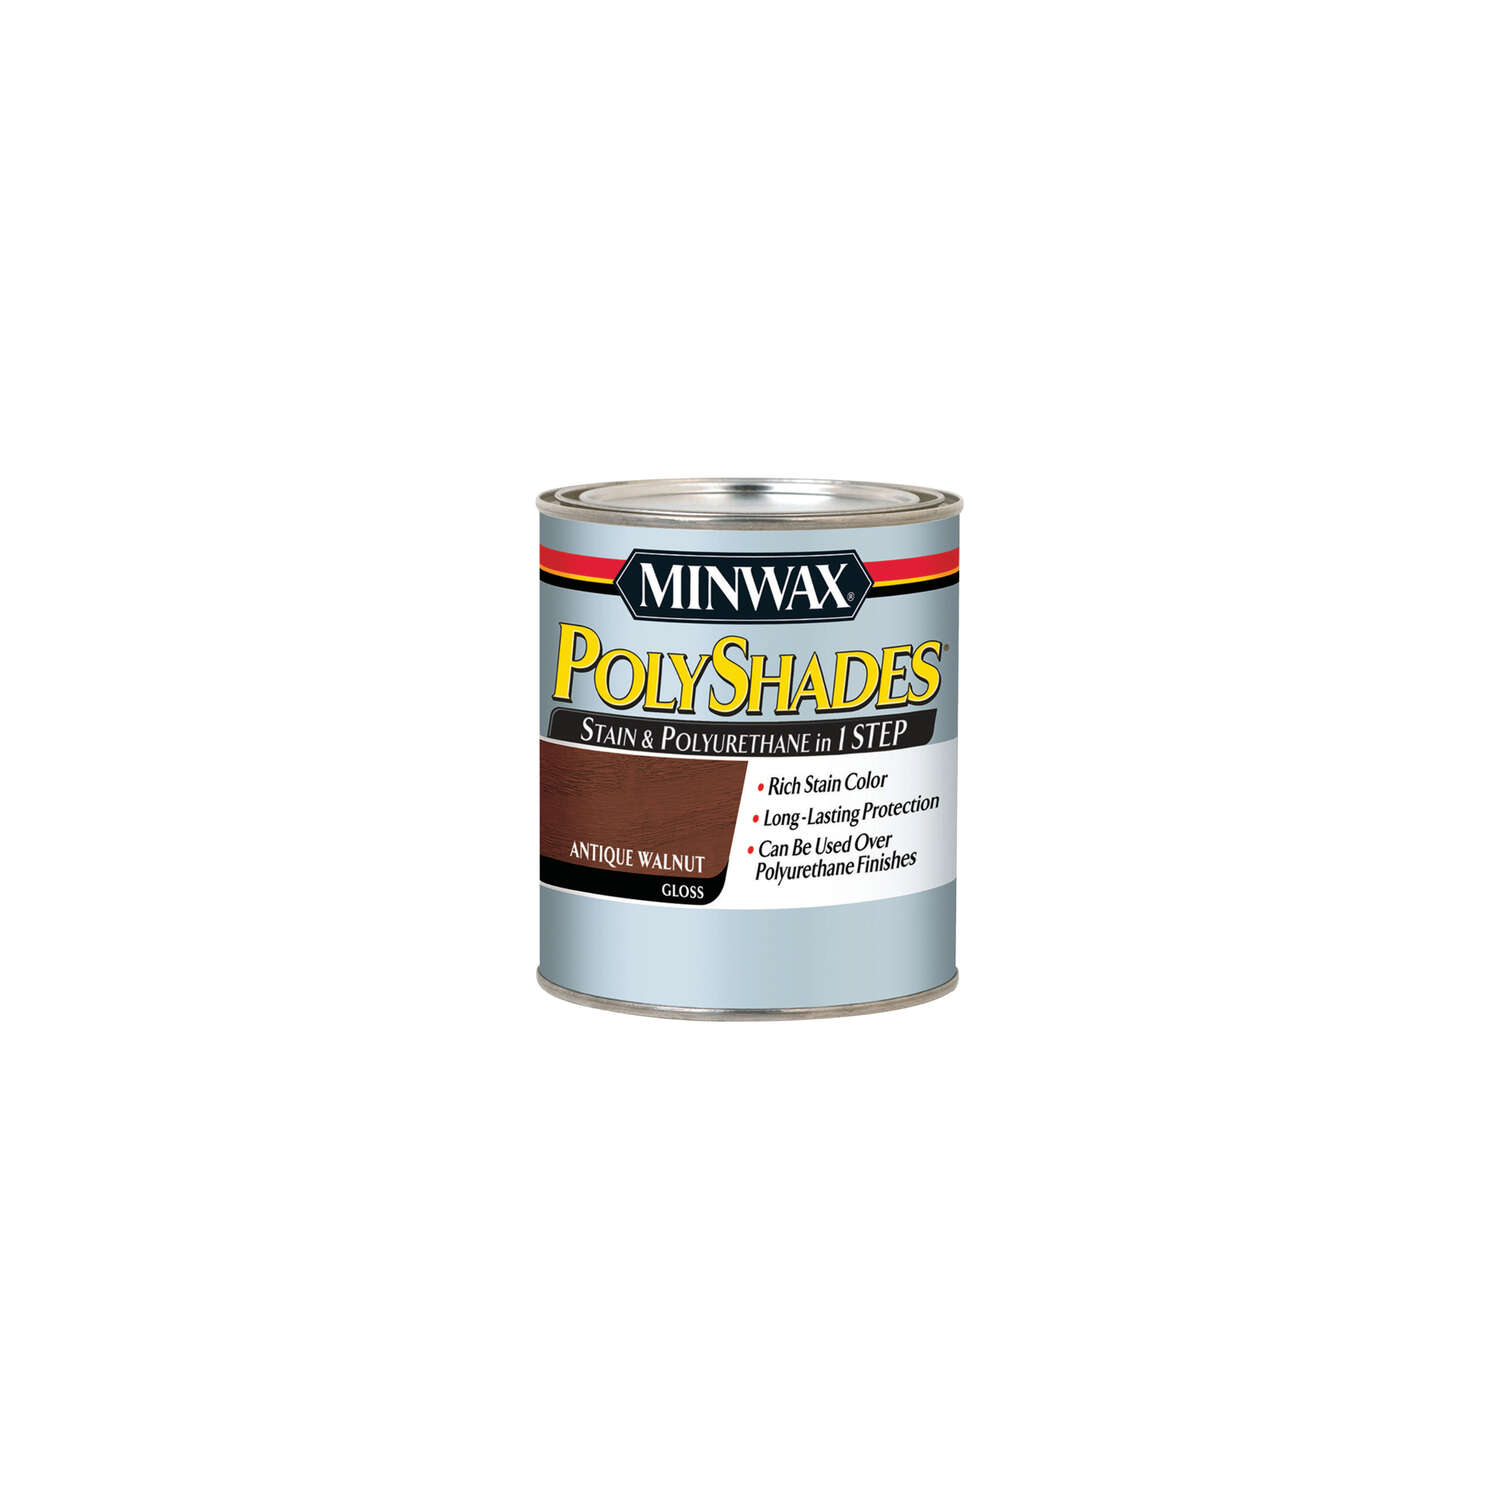 Minwax  PolyShades  Semi-Transparent  Gloss  Antique Walnut  Oil-Based  Polyurethane  Stain  0.5 pt.